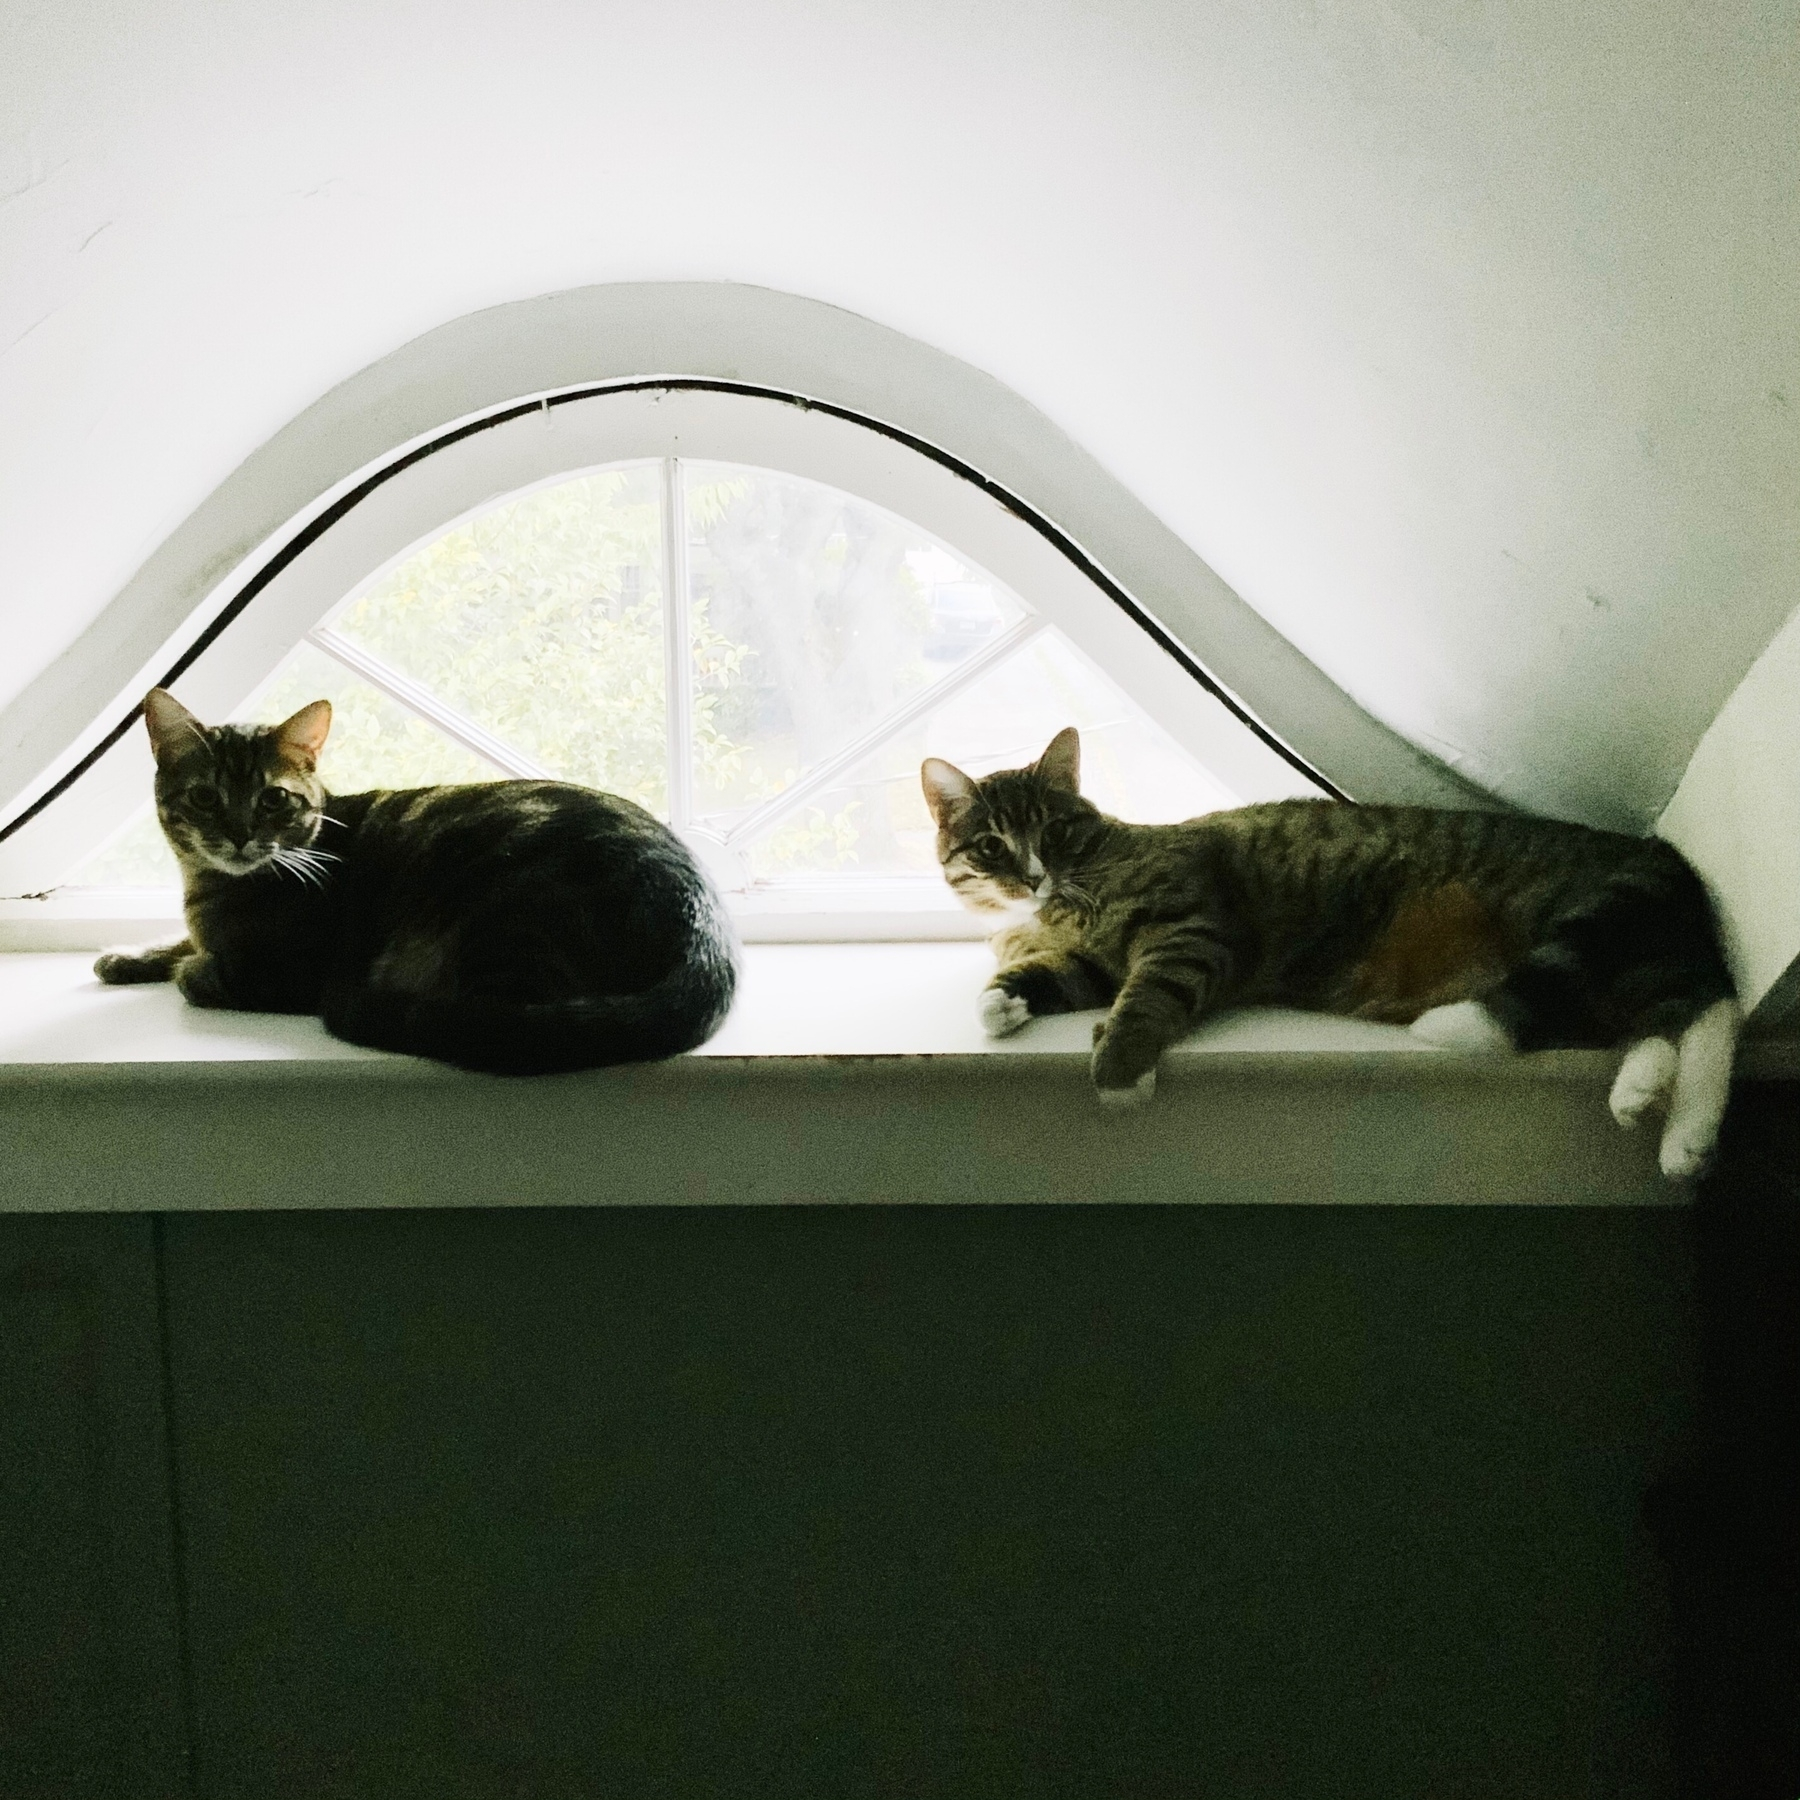 Tabby kittens in a window.